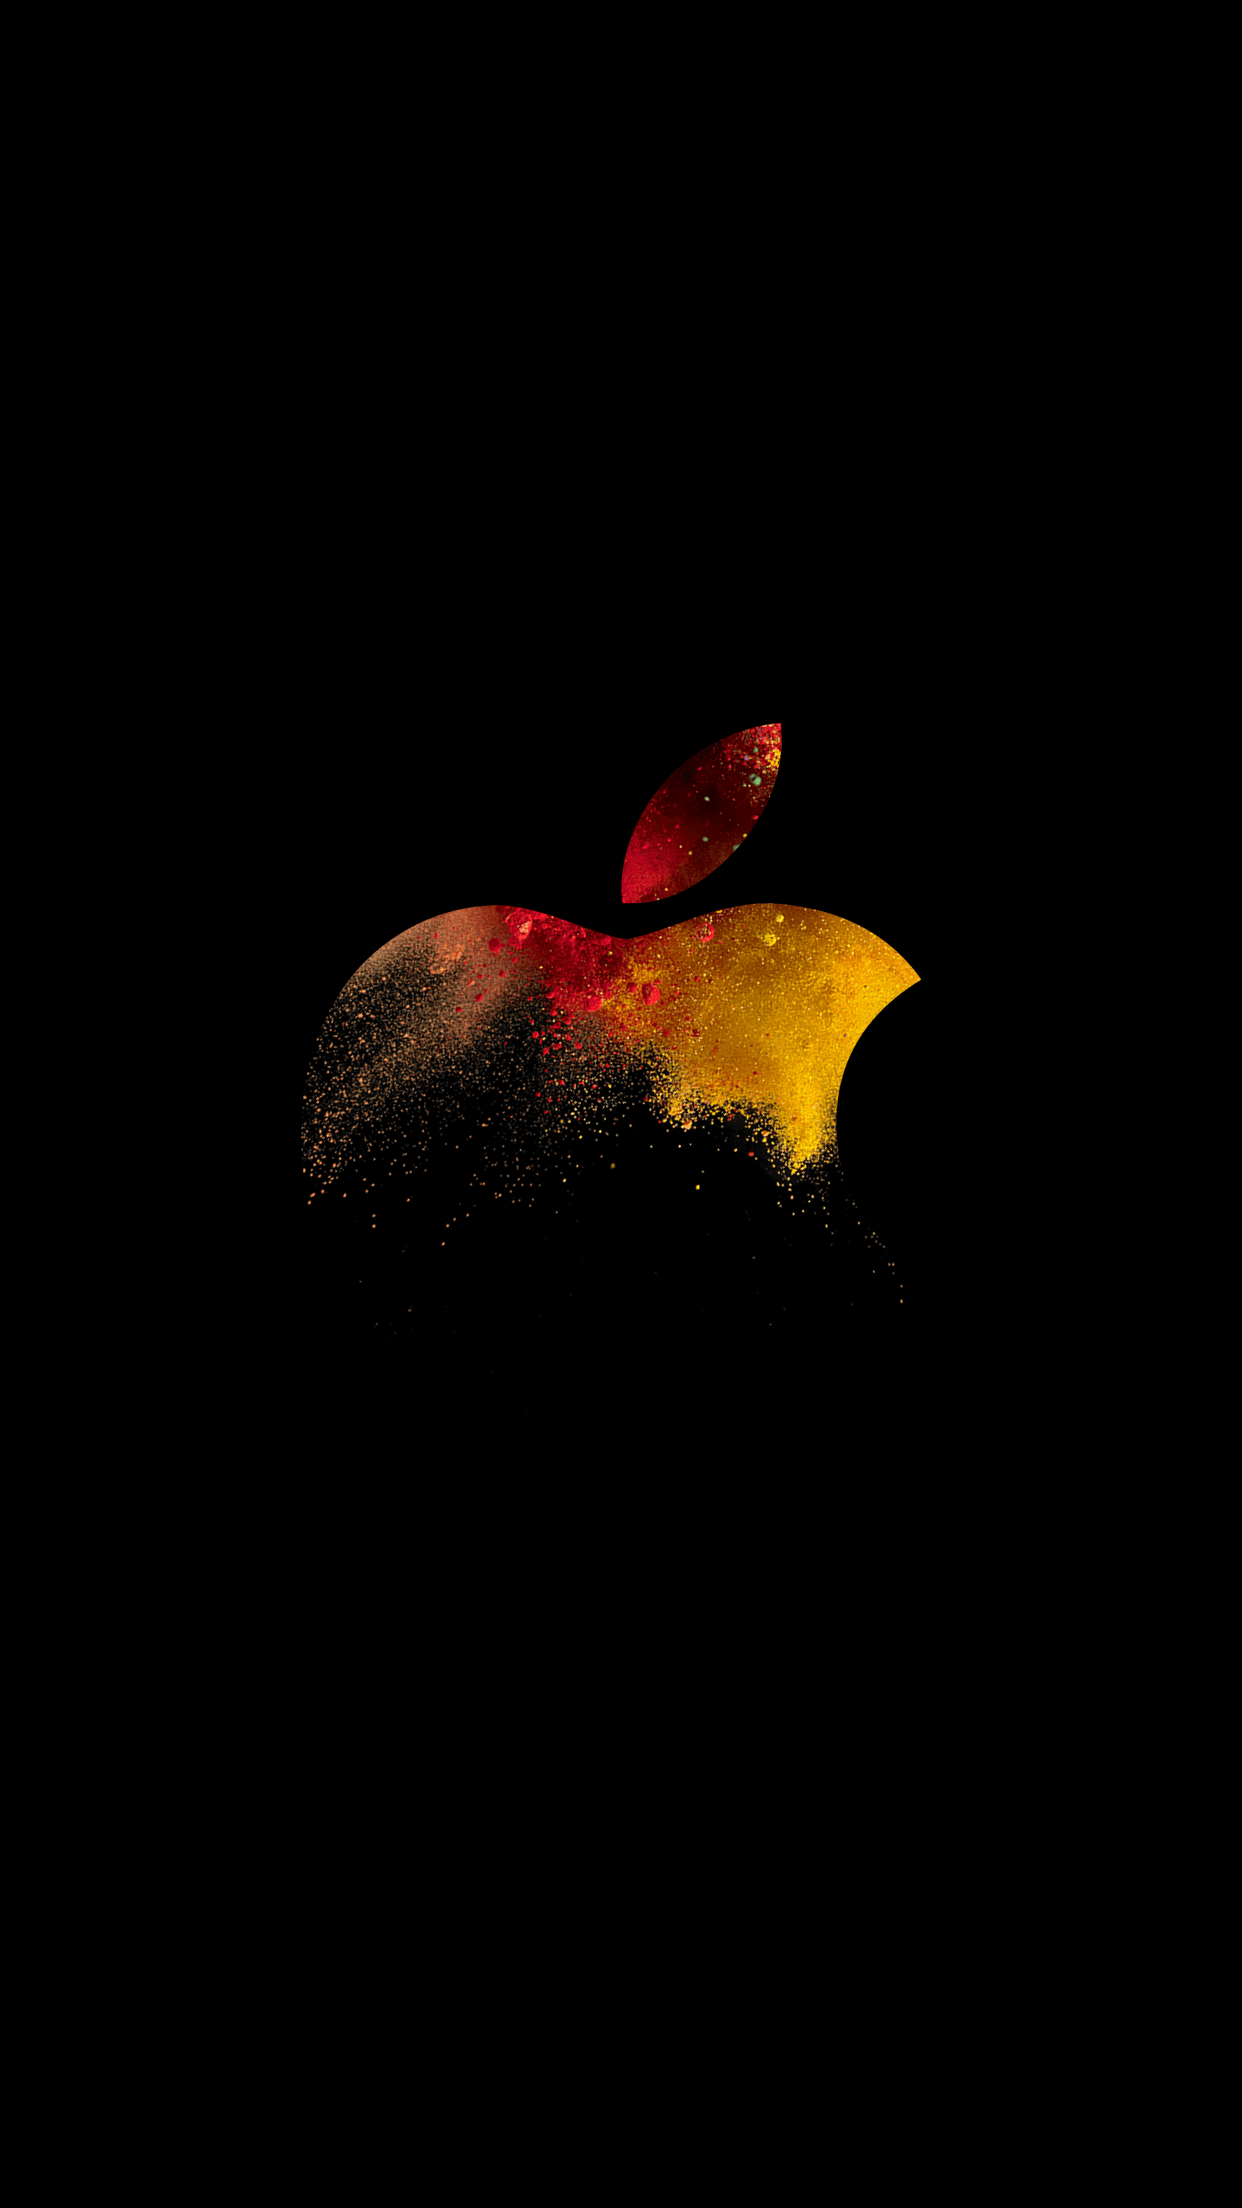 Inside Of Iphone X Wallpaper Apple October 27 Event Wallpapers Quot Hello Again Quot